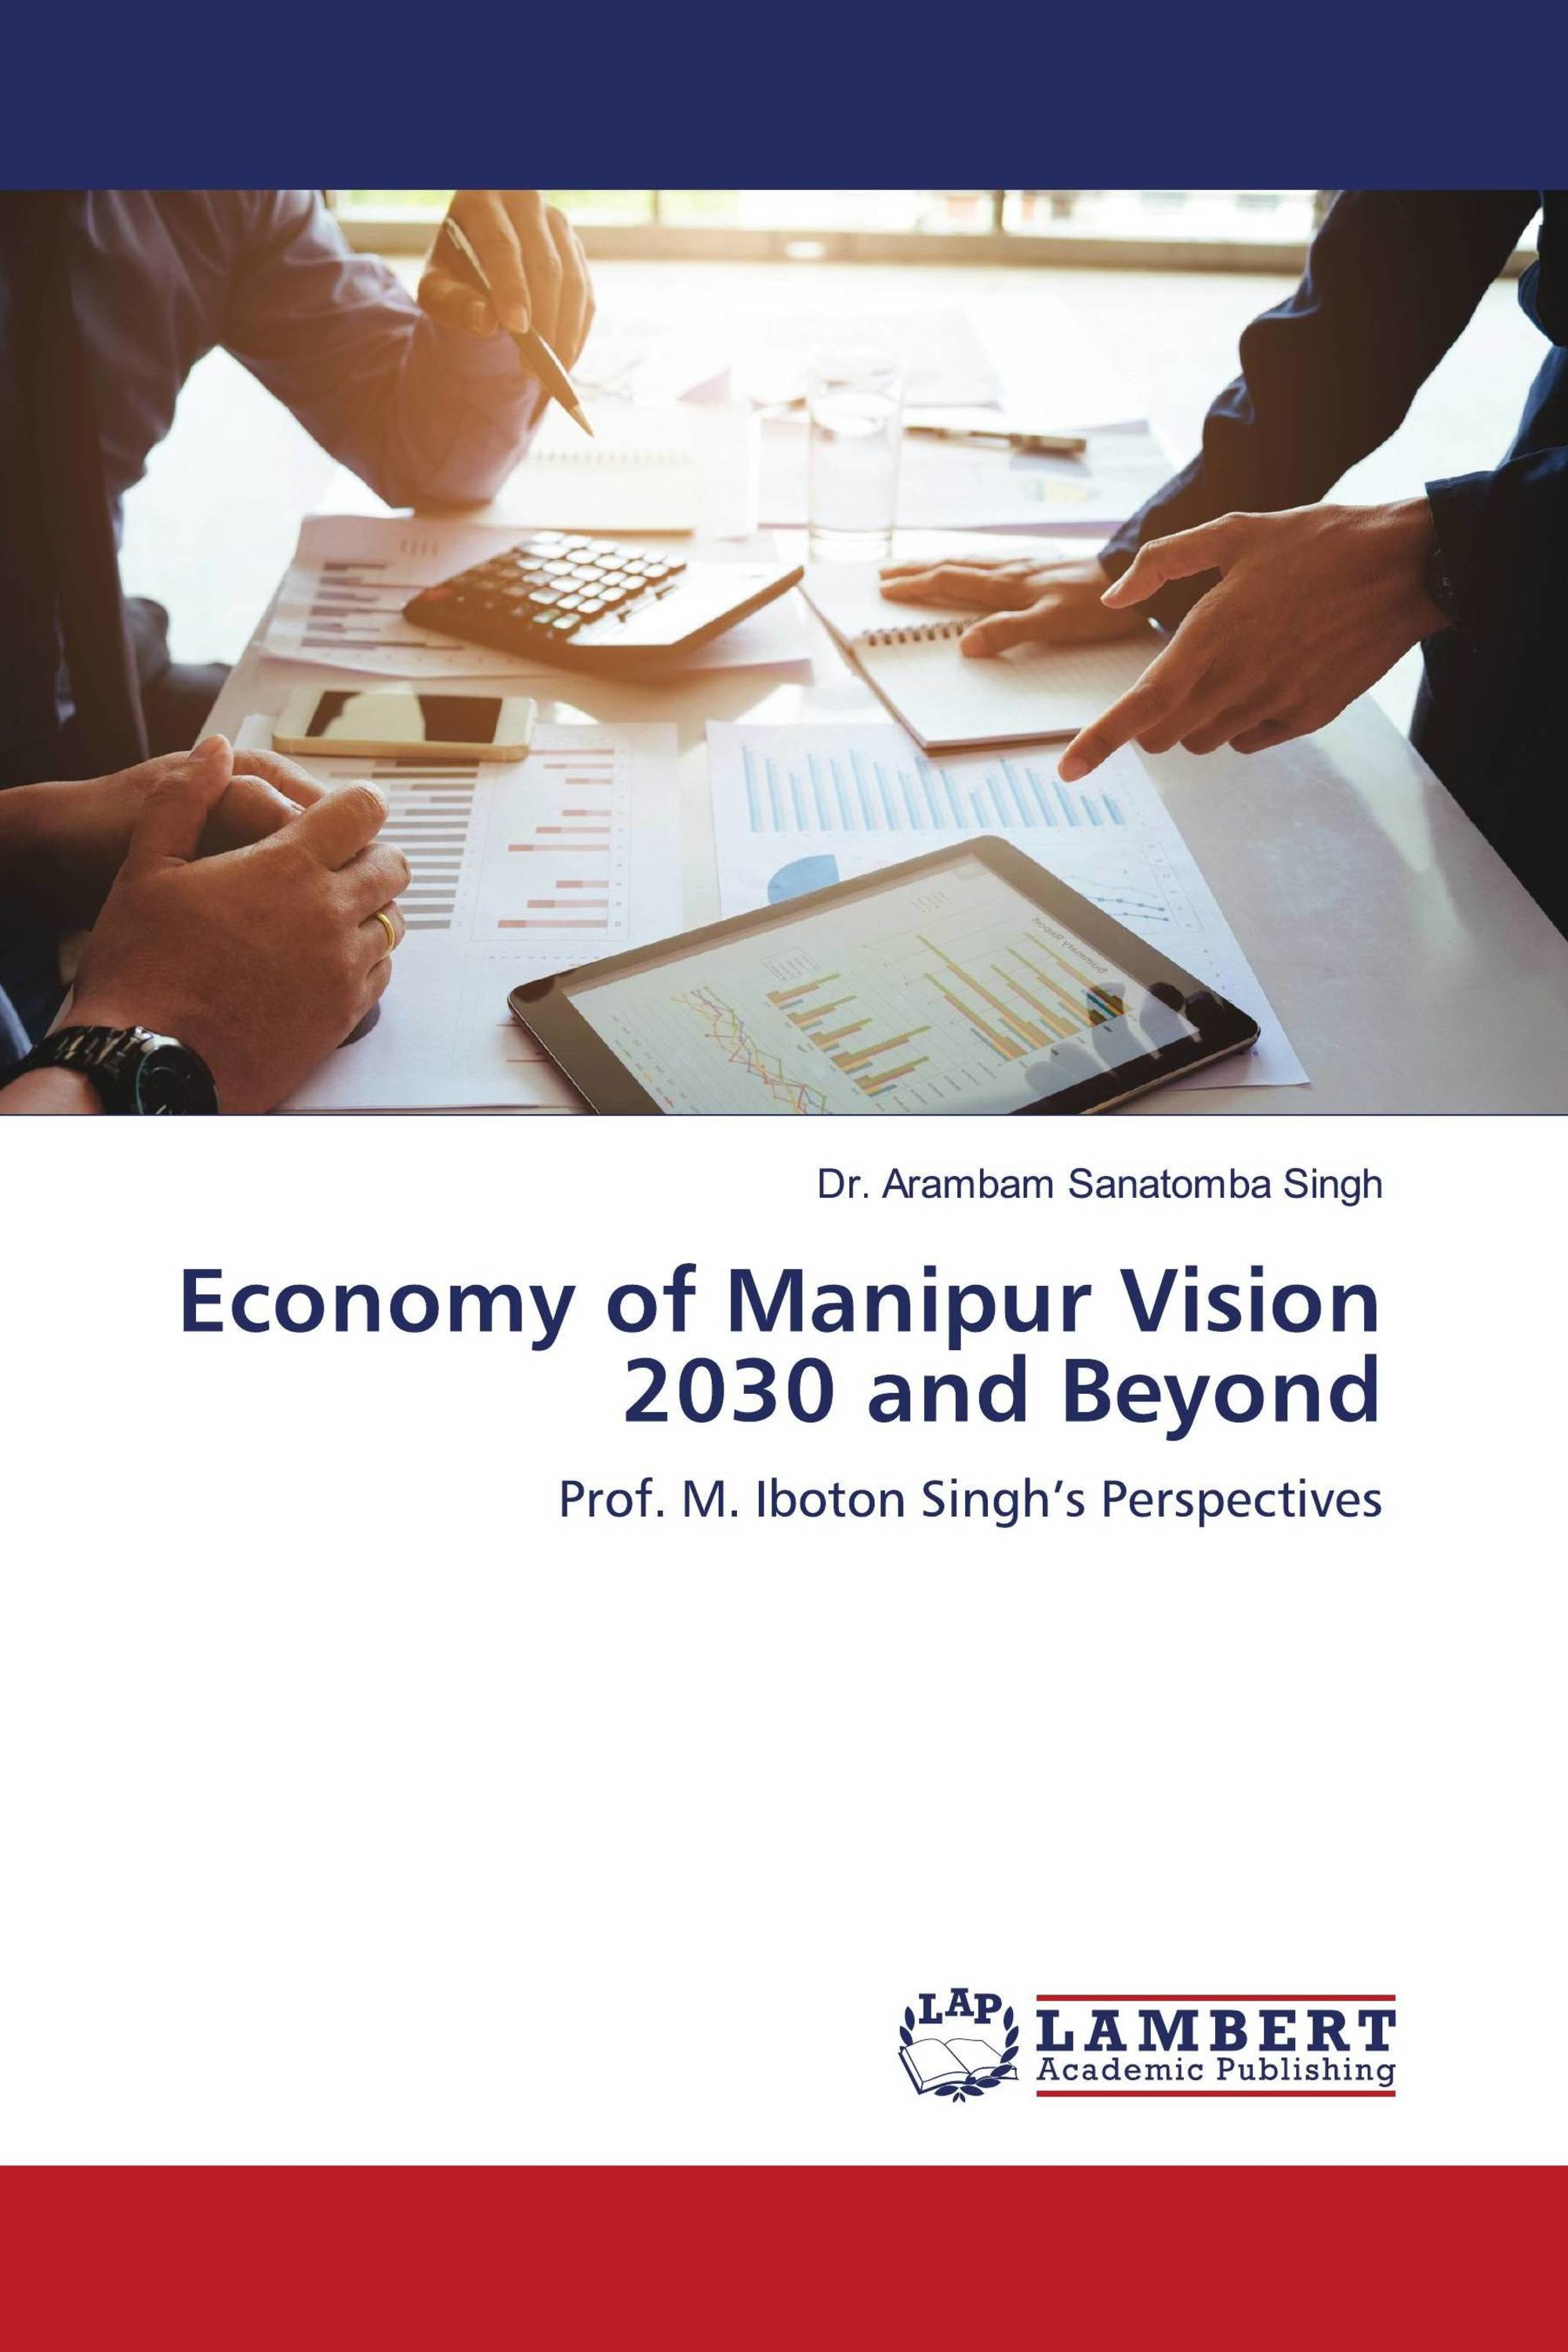 Economy of Manipur Vision 2030 and Beyond